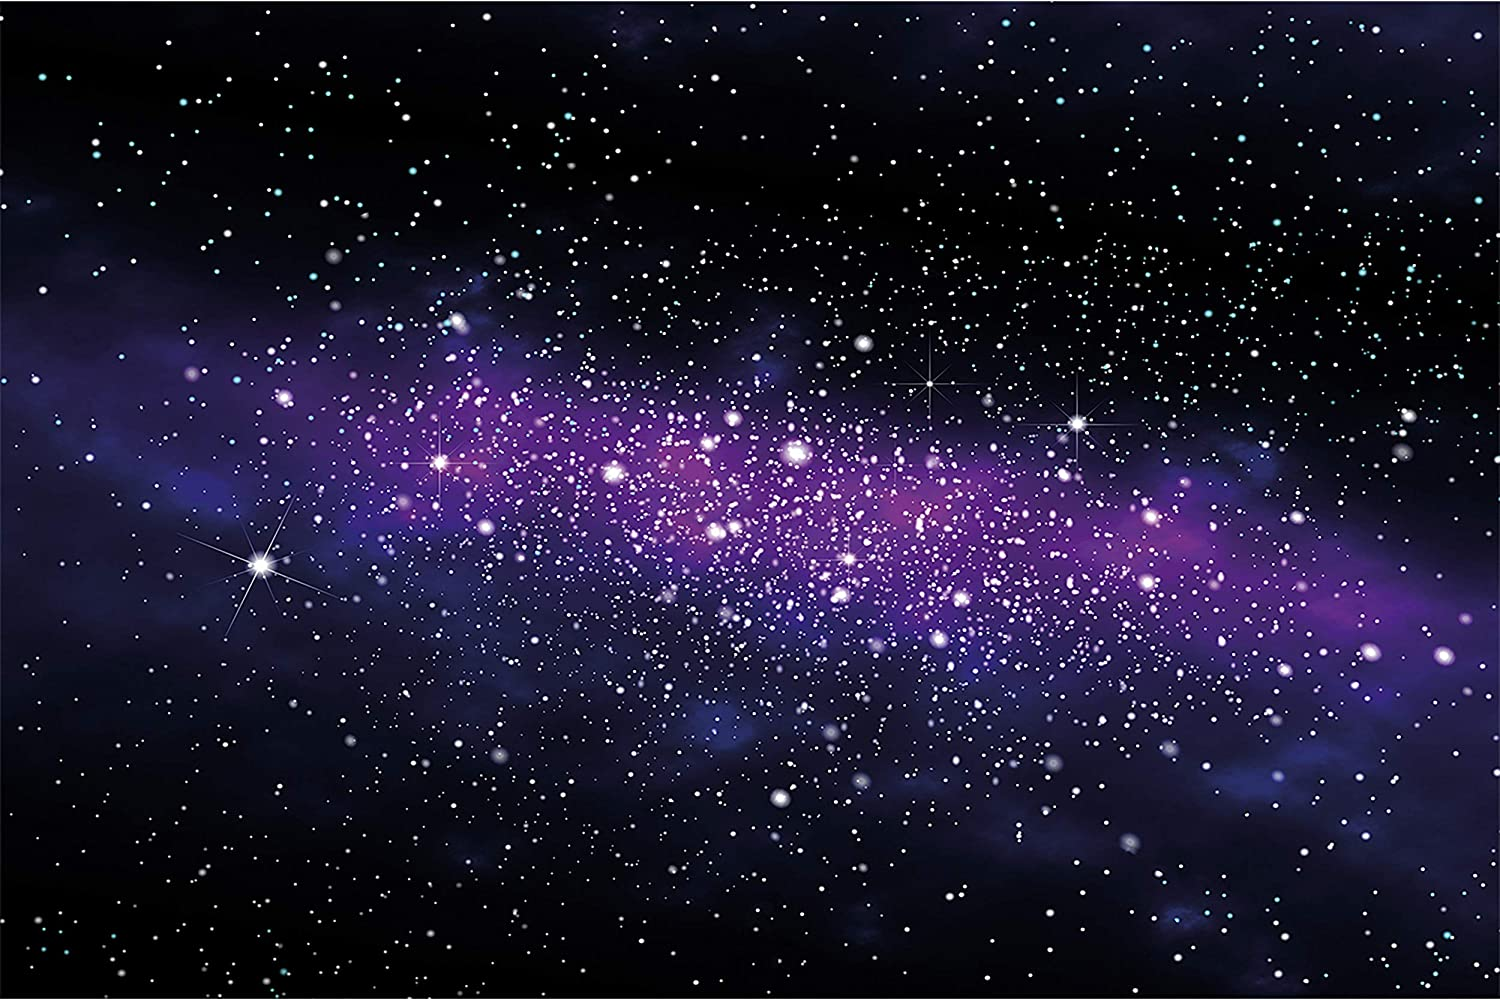 GREAT ART Kid's Room Nursery Mural – Galaxy Stars– Wall Picture Decoration Outer Space Sky Universe Cosmos Starry Sky Milky Way Super Nova Wallposter Photoposter